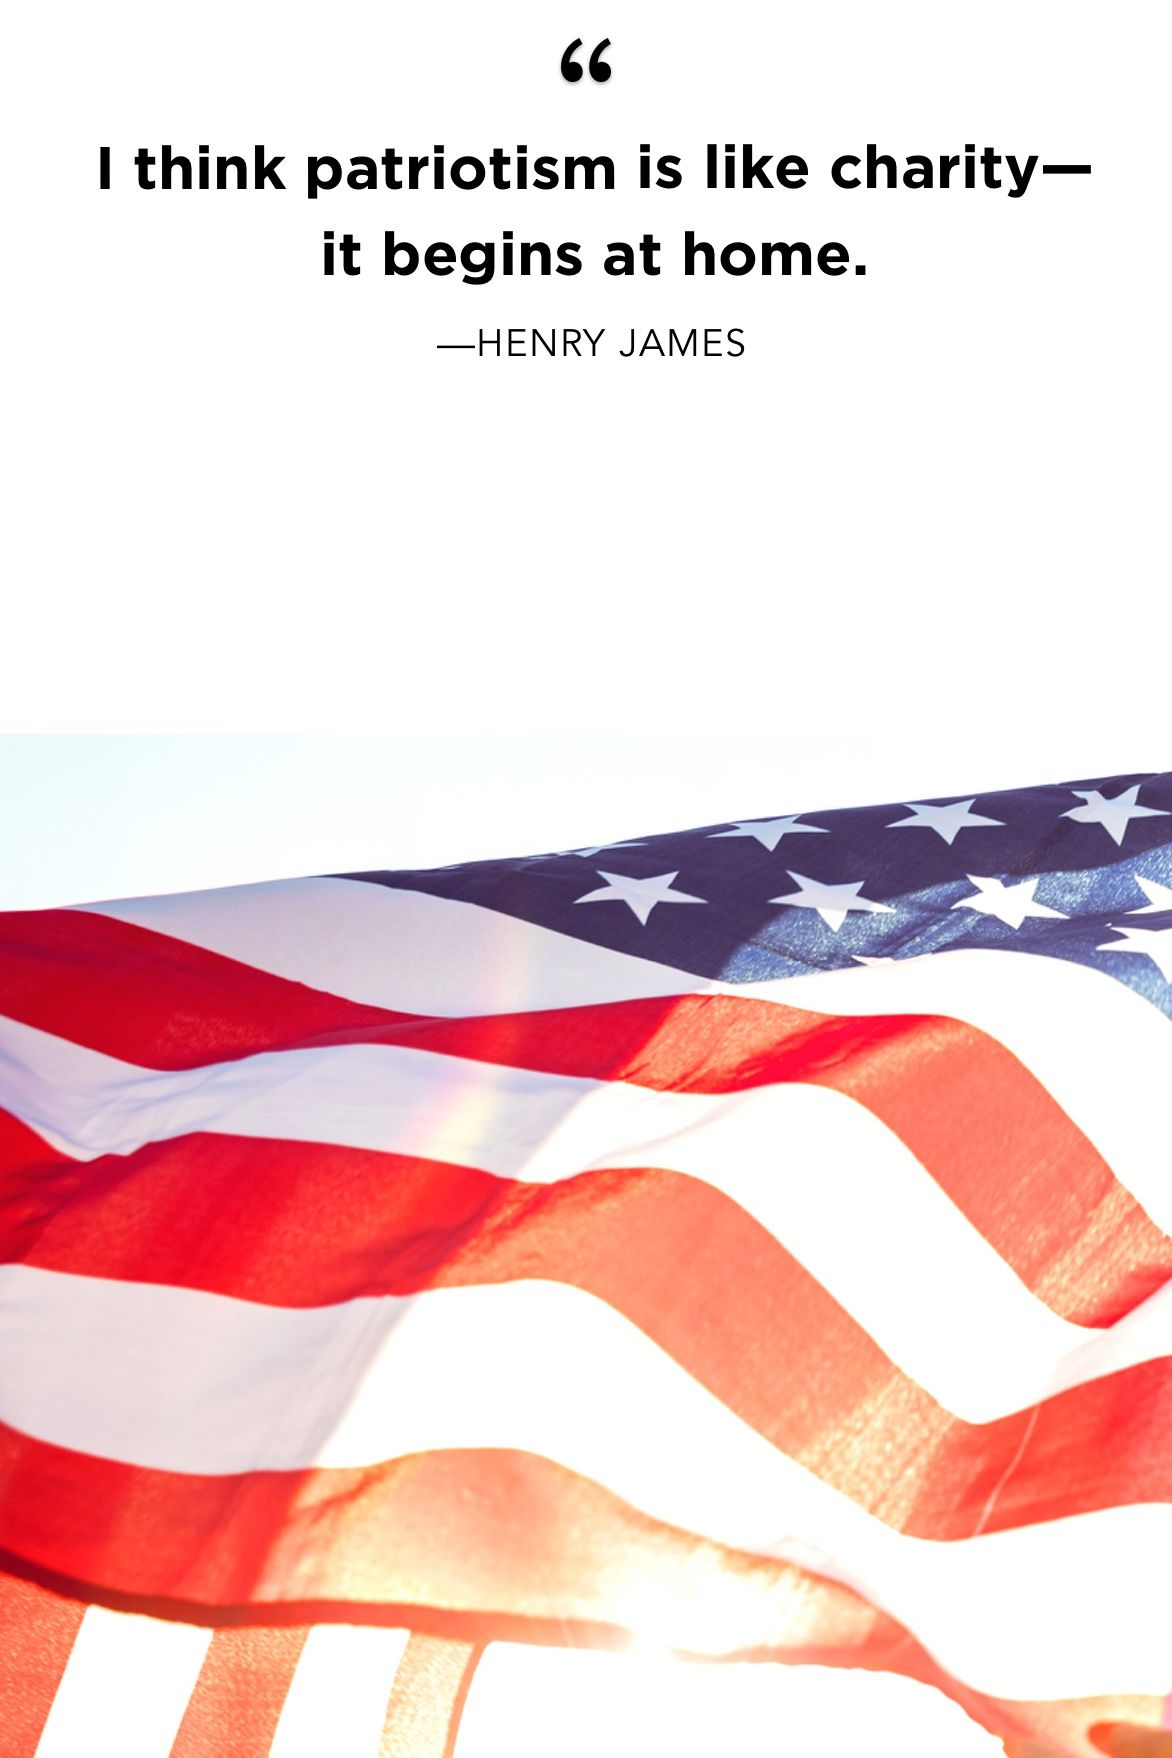 35 Patriotic Quotes for 4th of July - Best 4th of July Quotes